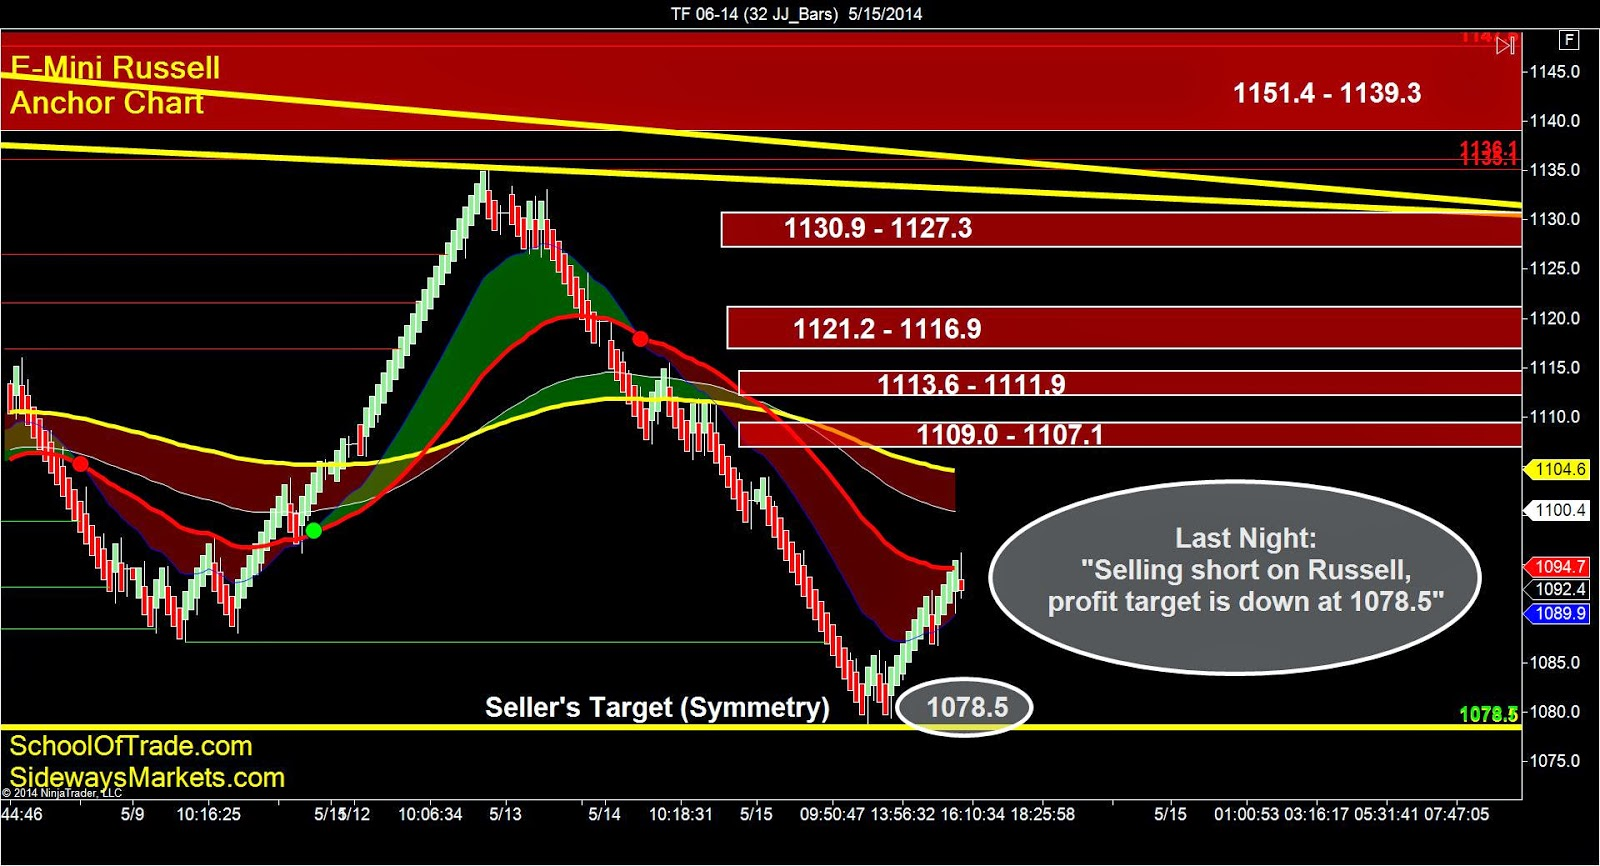 Day Trading Mini-Russell Futures